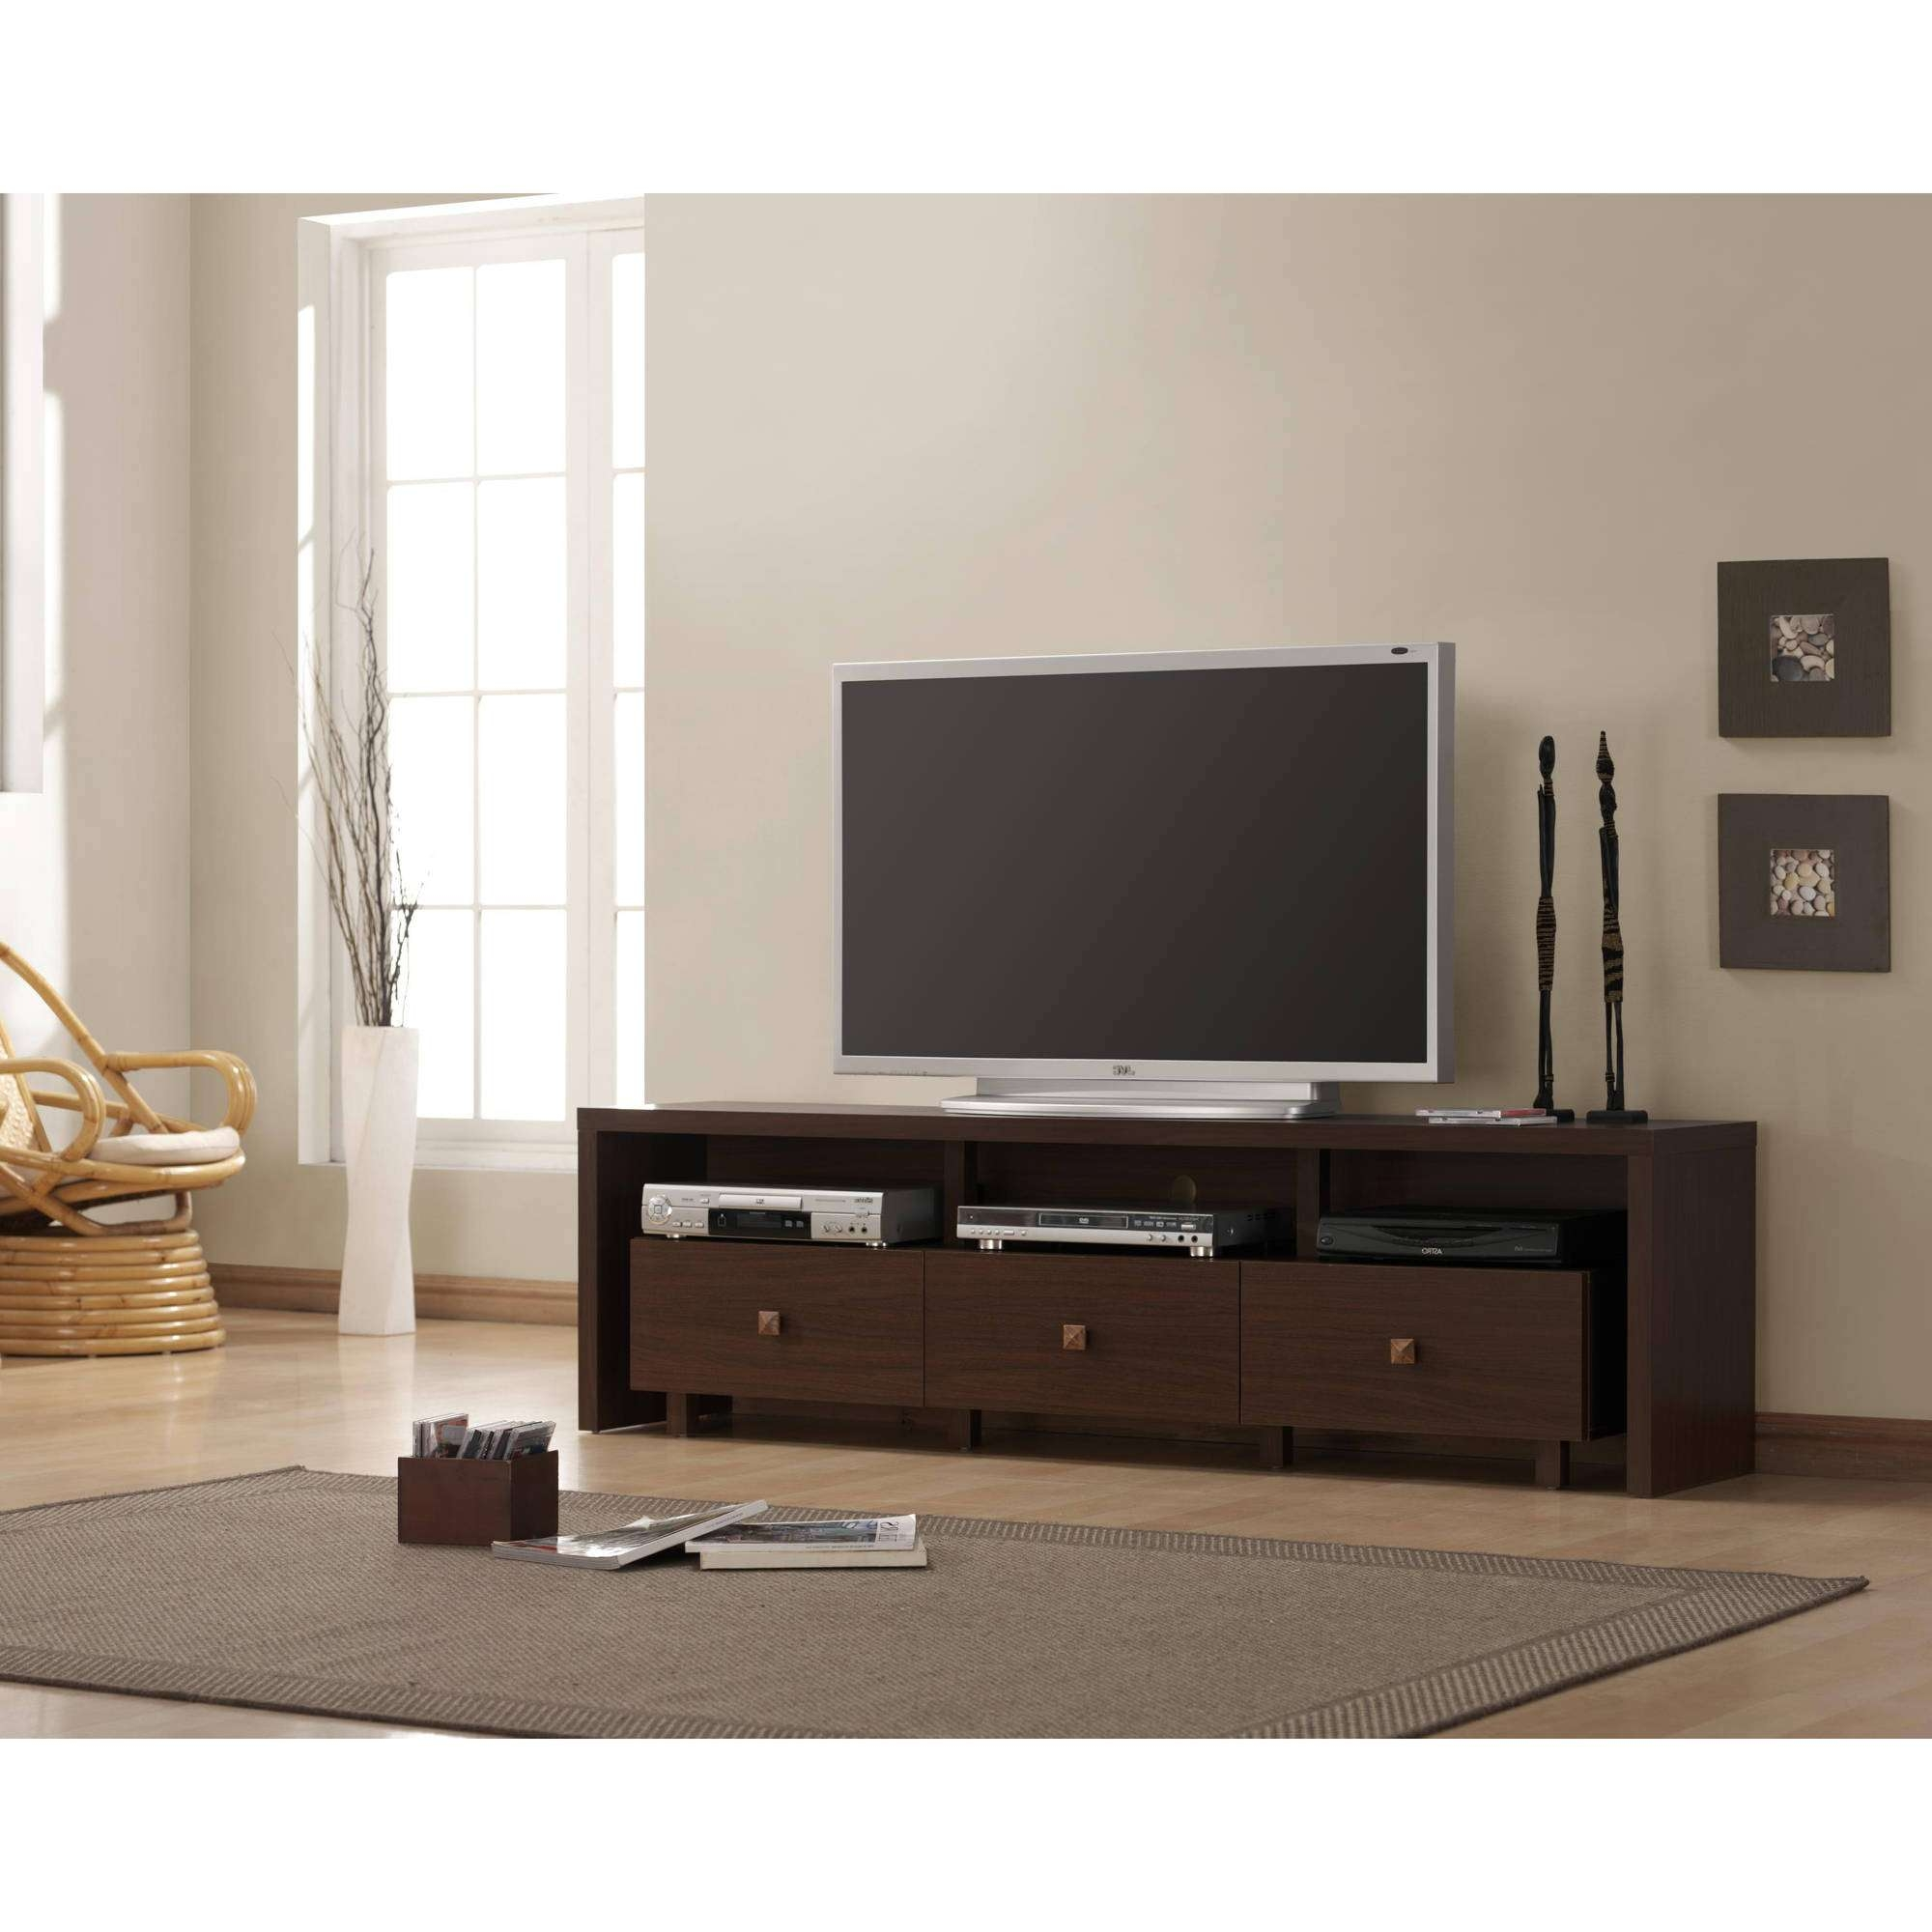 Howling Porter Tv Stand Porter Tv Stand Home Entertainment From With Regard To Modern Tv Stands For 60 Inch Tvs (View 3 of 15)